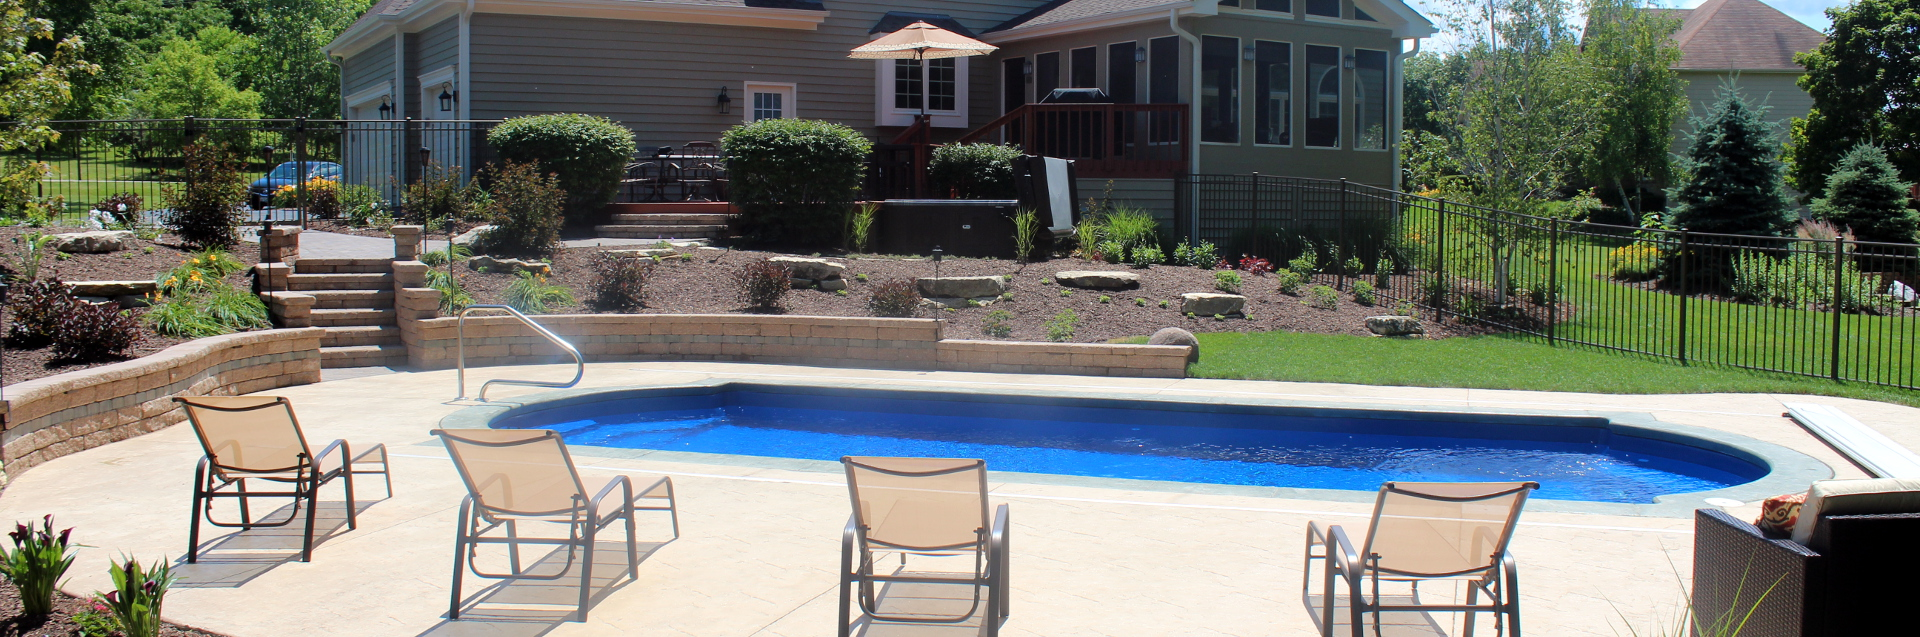 how much do fiberglass pools cost?aquaserv